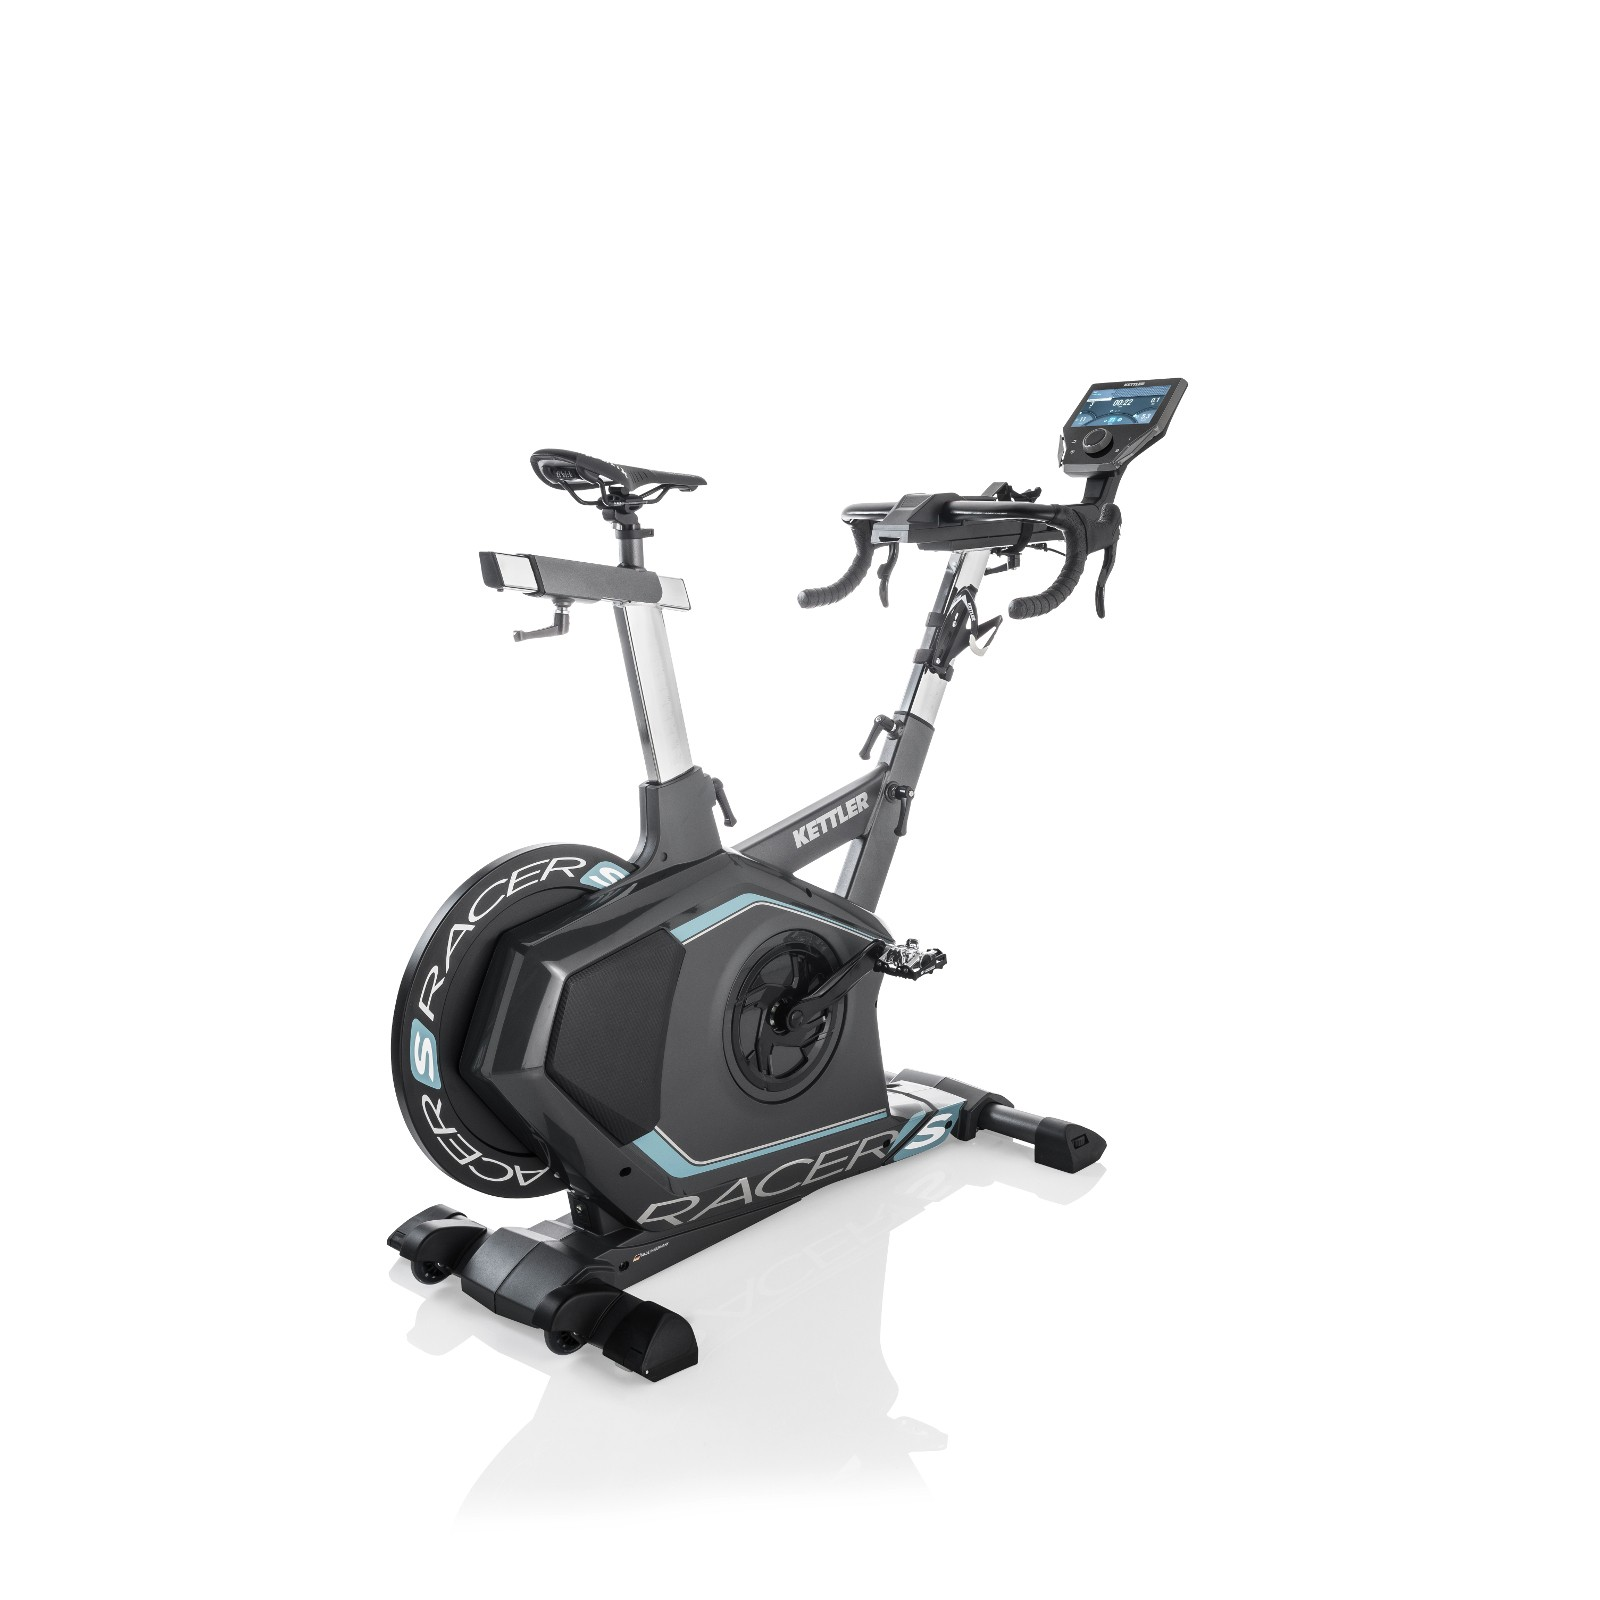 Kettler Fitness Kettler Exercise Bike Racer S Incl Kettler World Tours 2